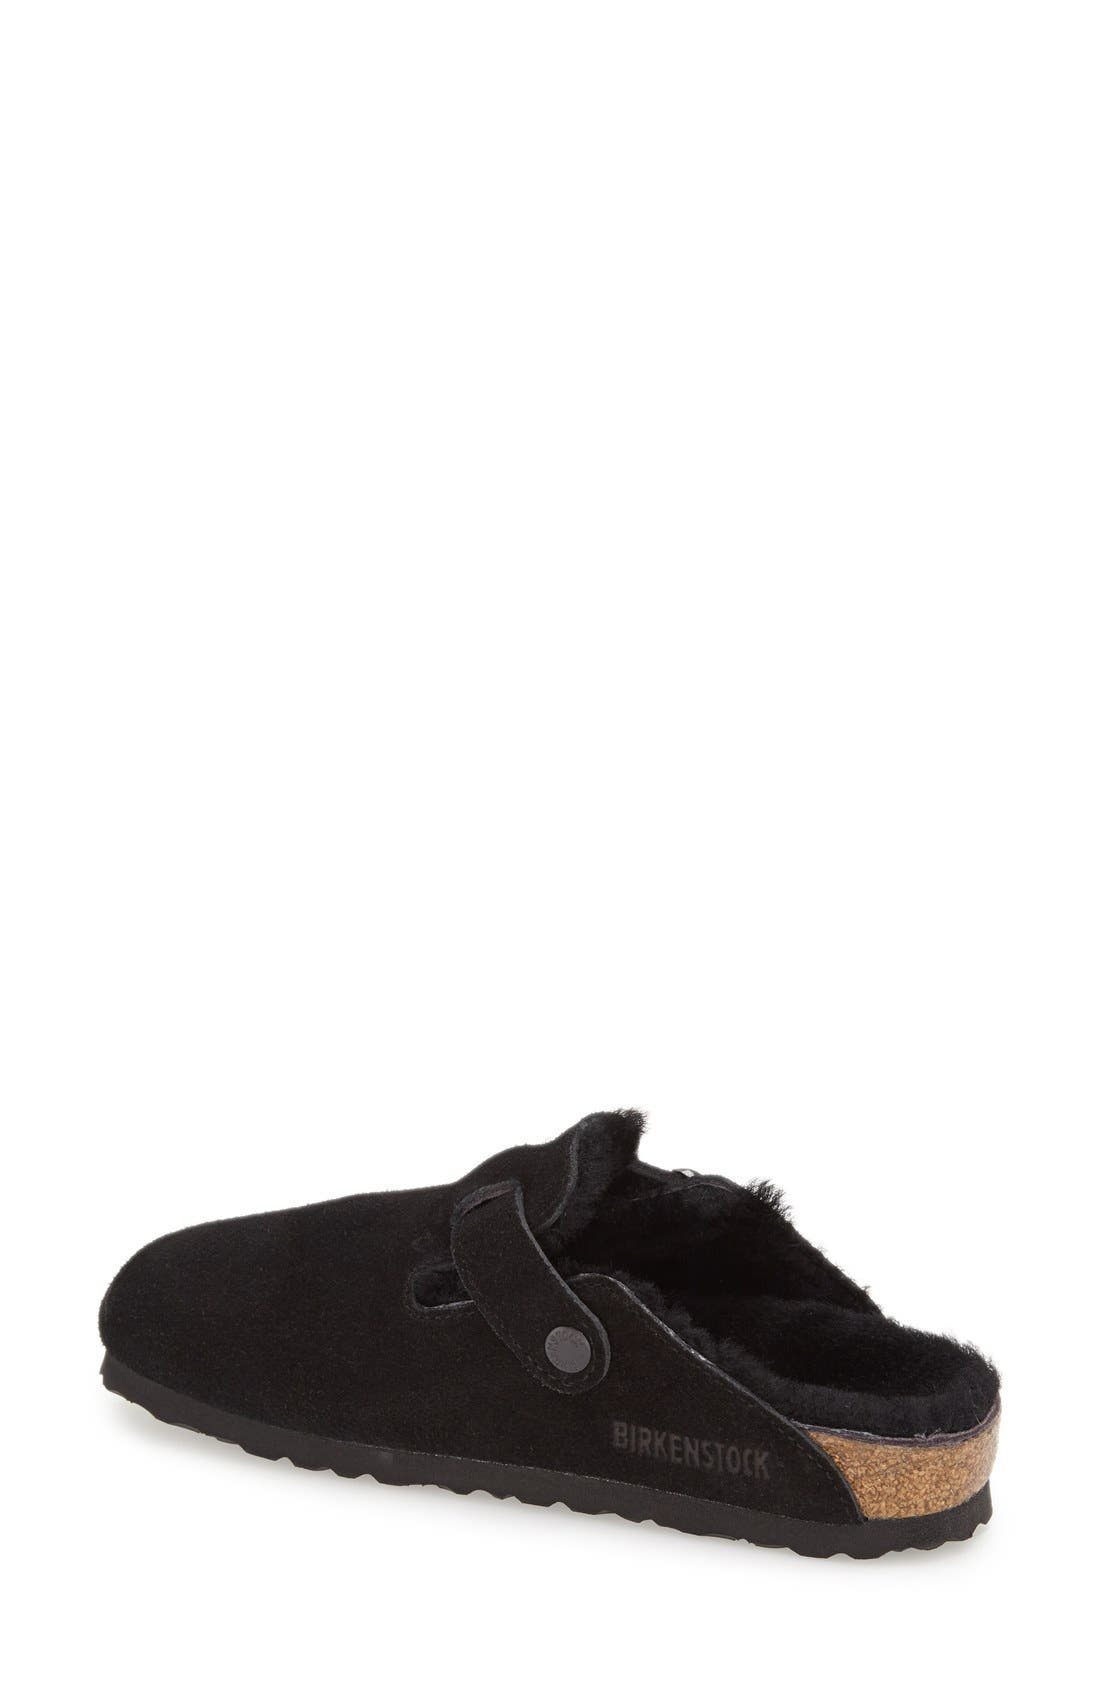 'Boston' Genuine Shearling Lined Clog,                             Alternate thumbnail 2, color,                             Black